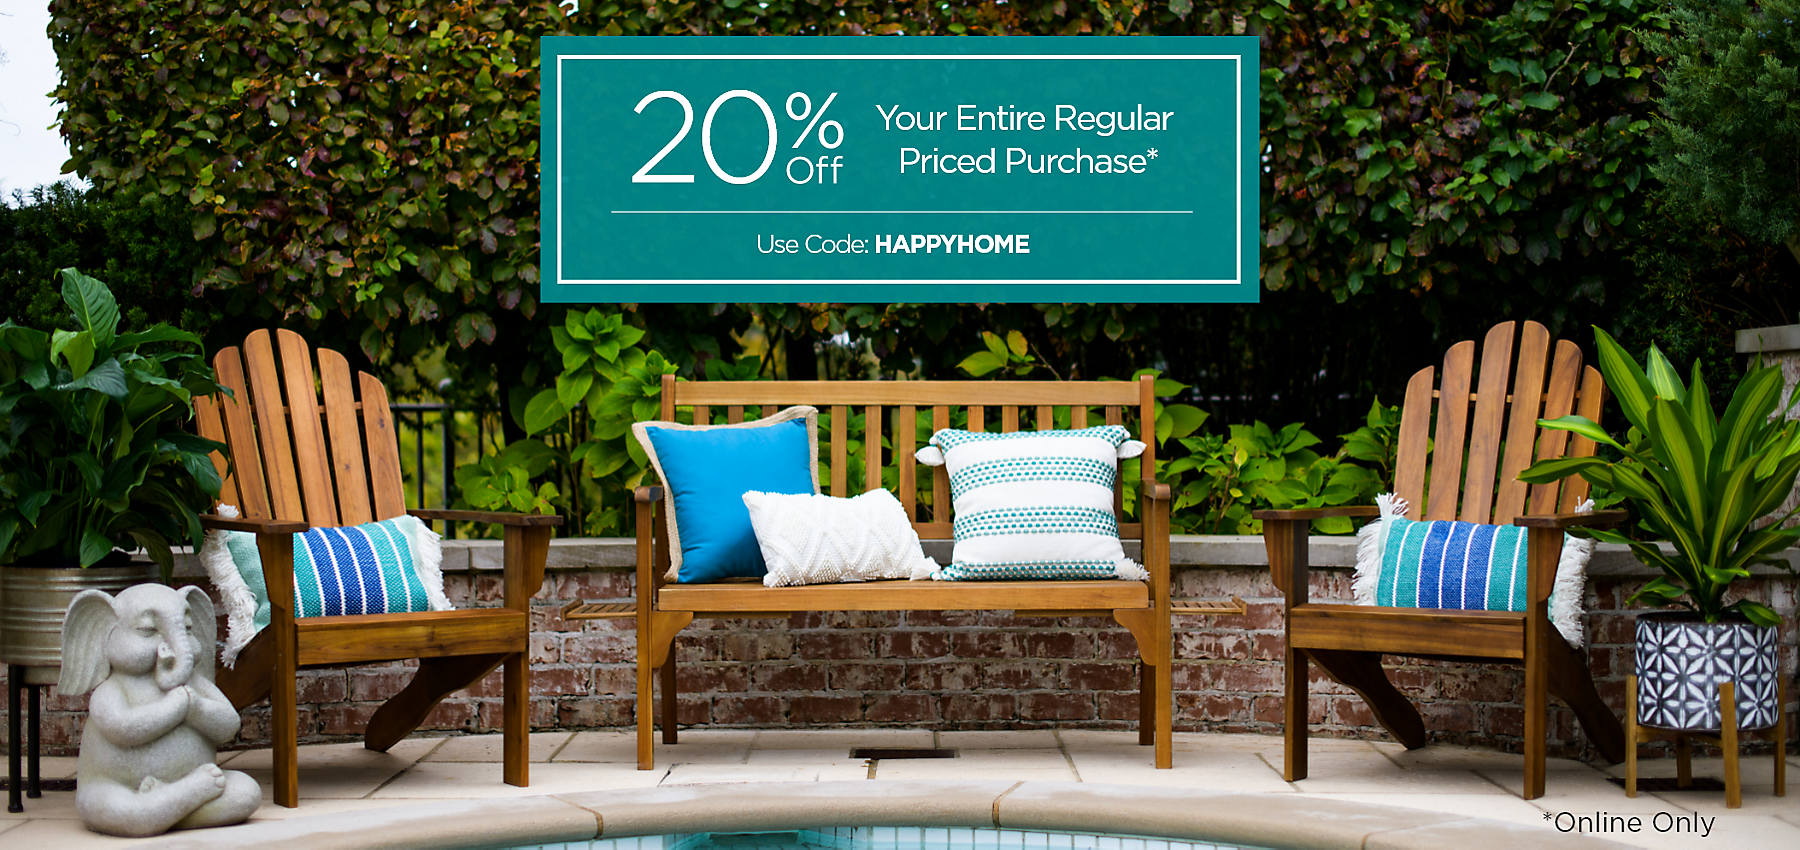 20% Off Your Entire Regular Priced Purchase use code HAPPYHOME Online Only